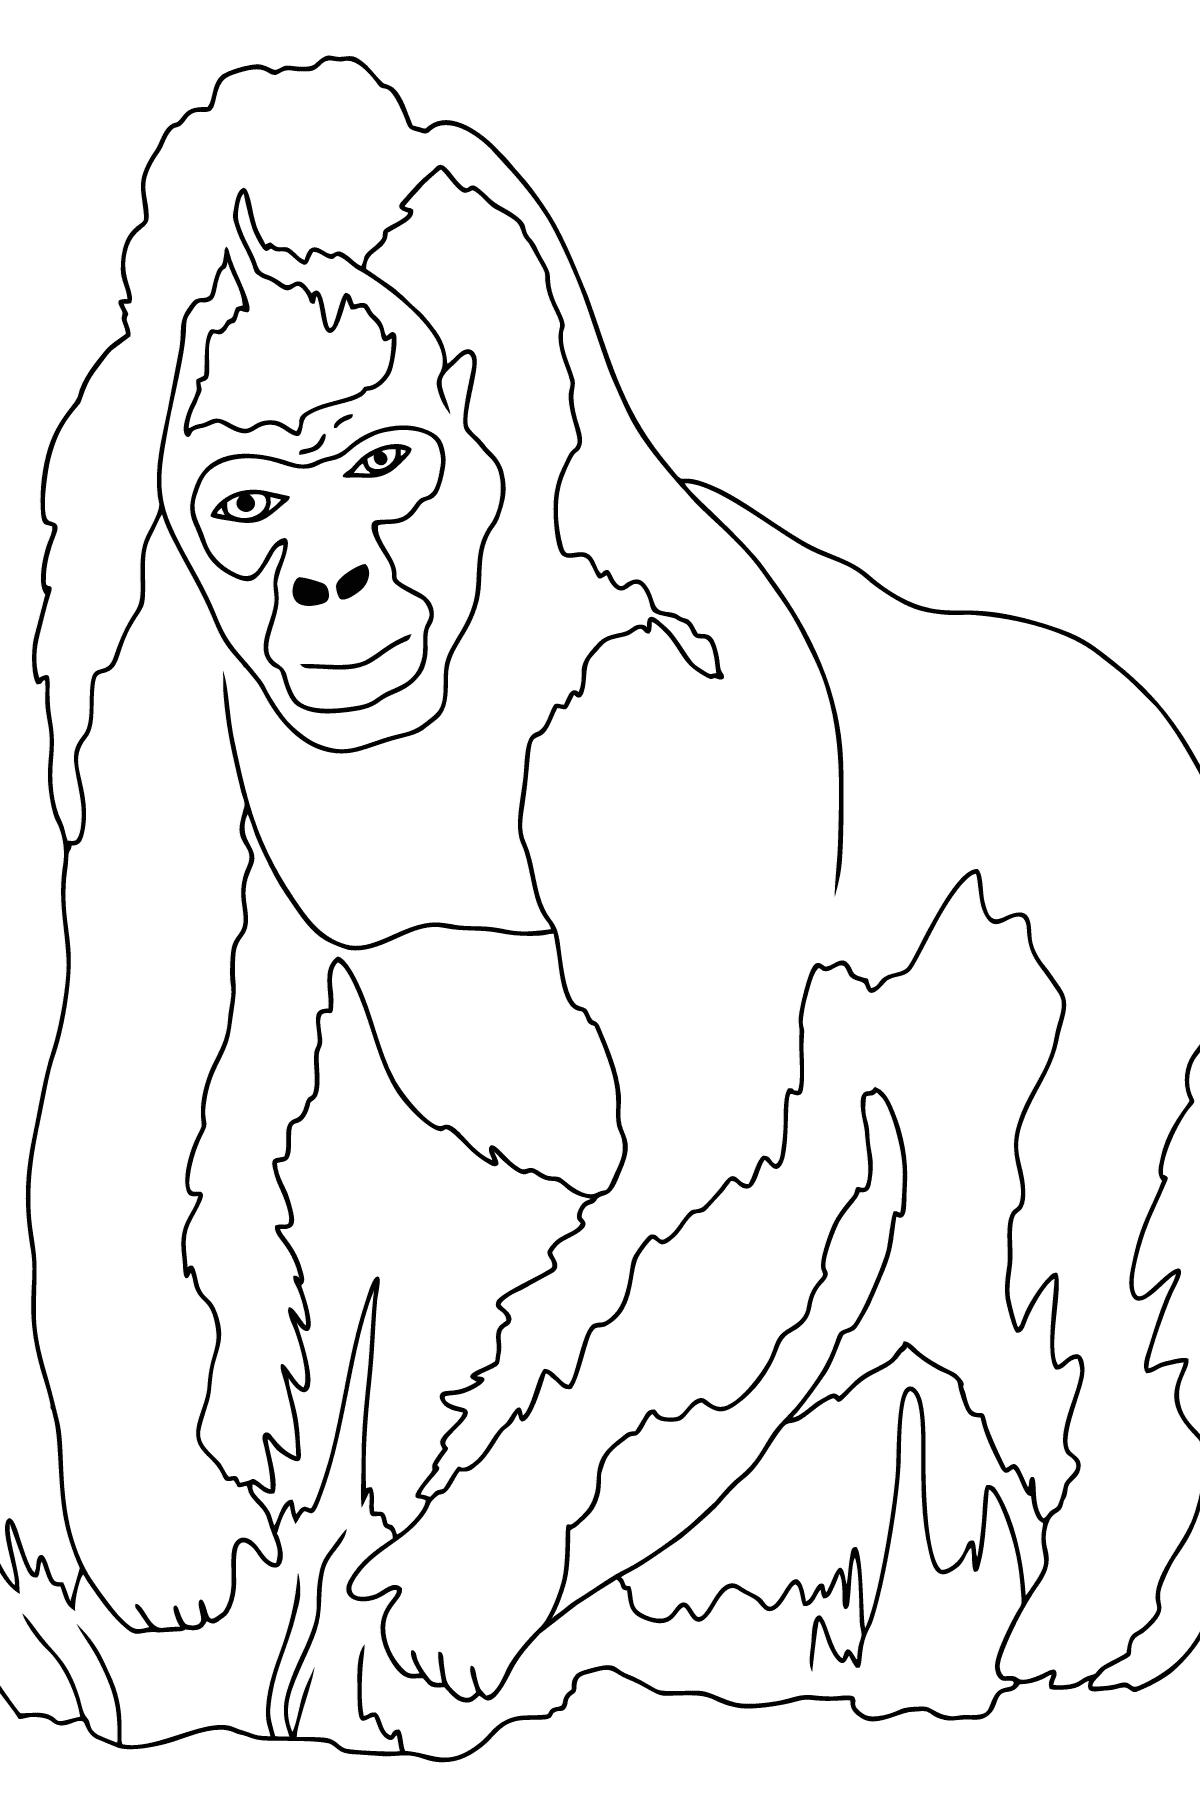 Coloring Page - A Real Gorilla - Coloring Pages for Children